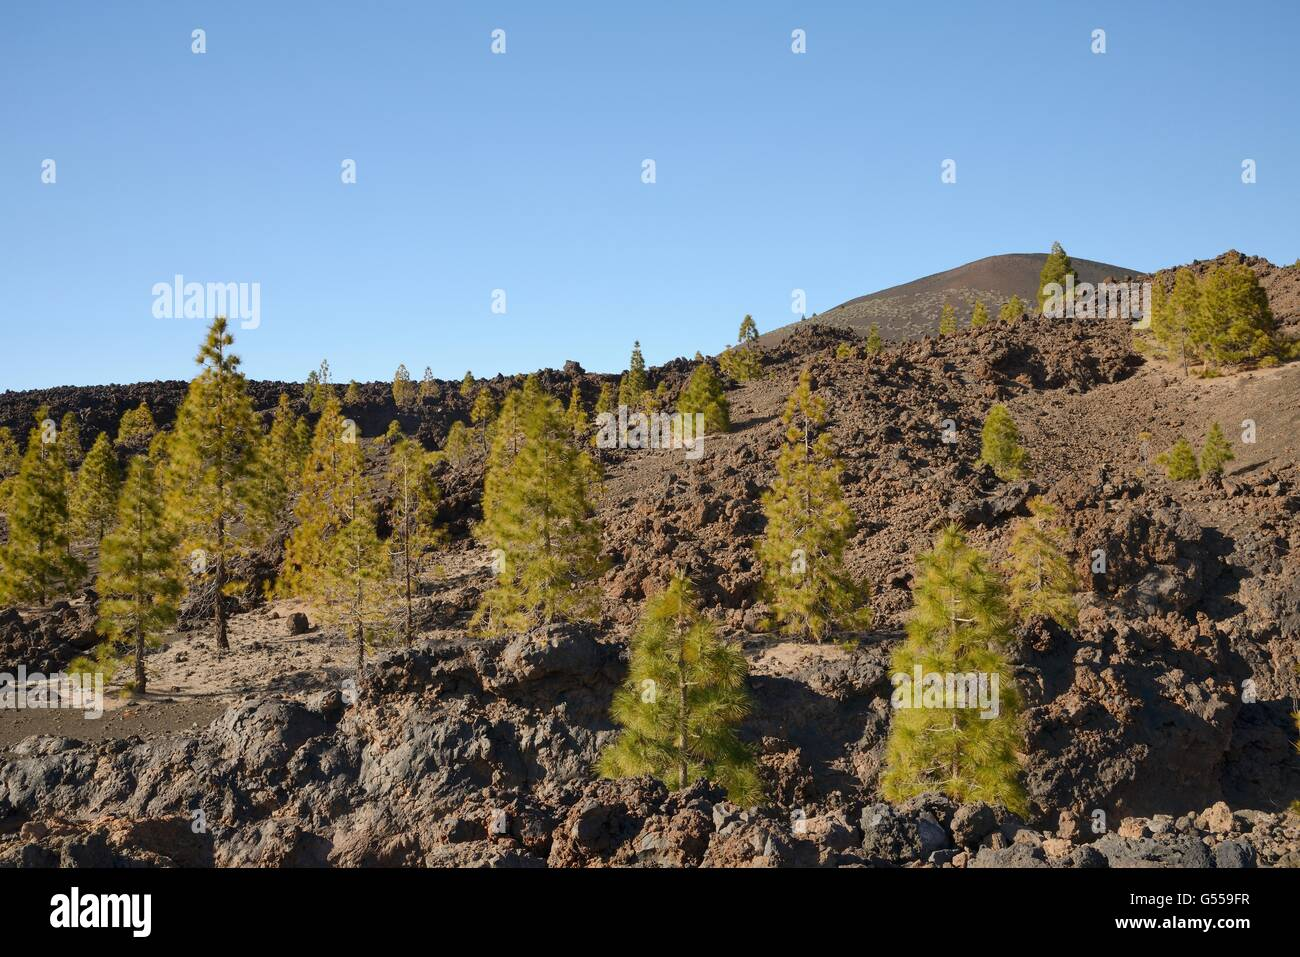 Canary island pines (Pinus canariensis), endemic to the Canaries, growing among old volcanic lava flows below Mount - Stock Image